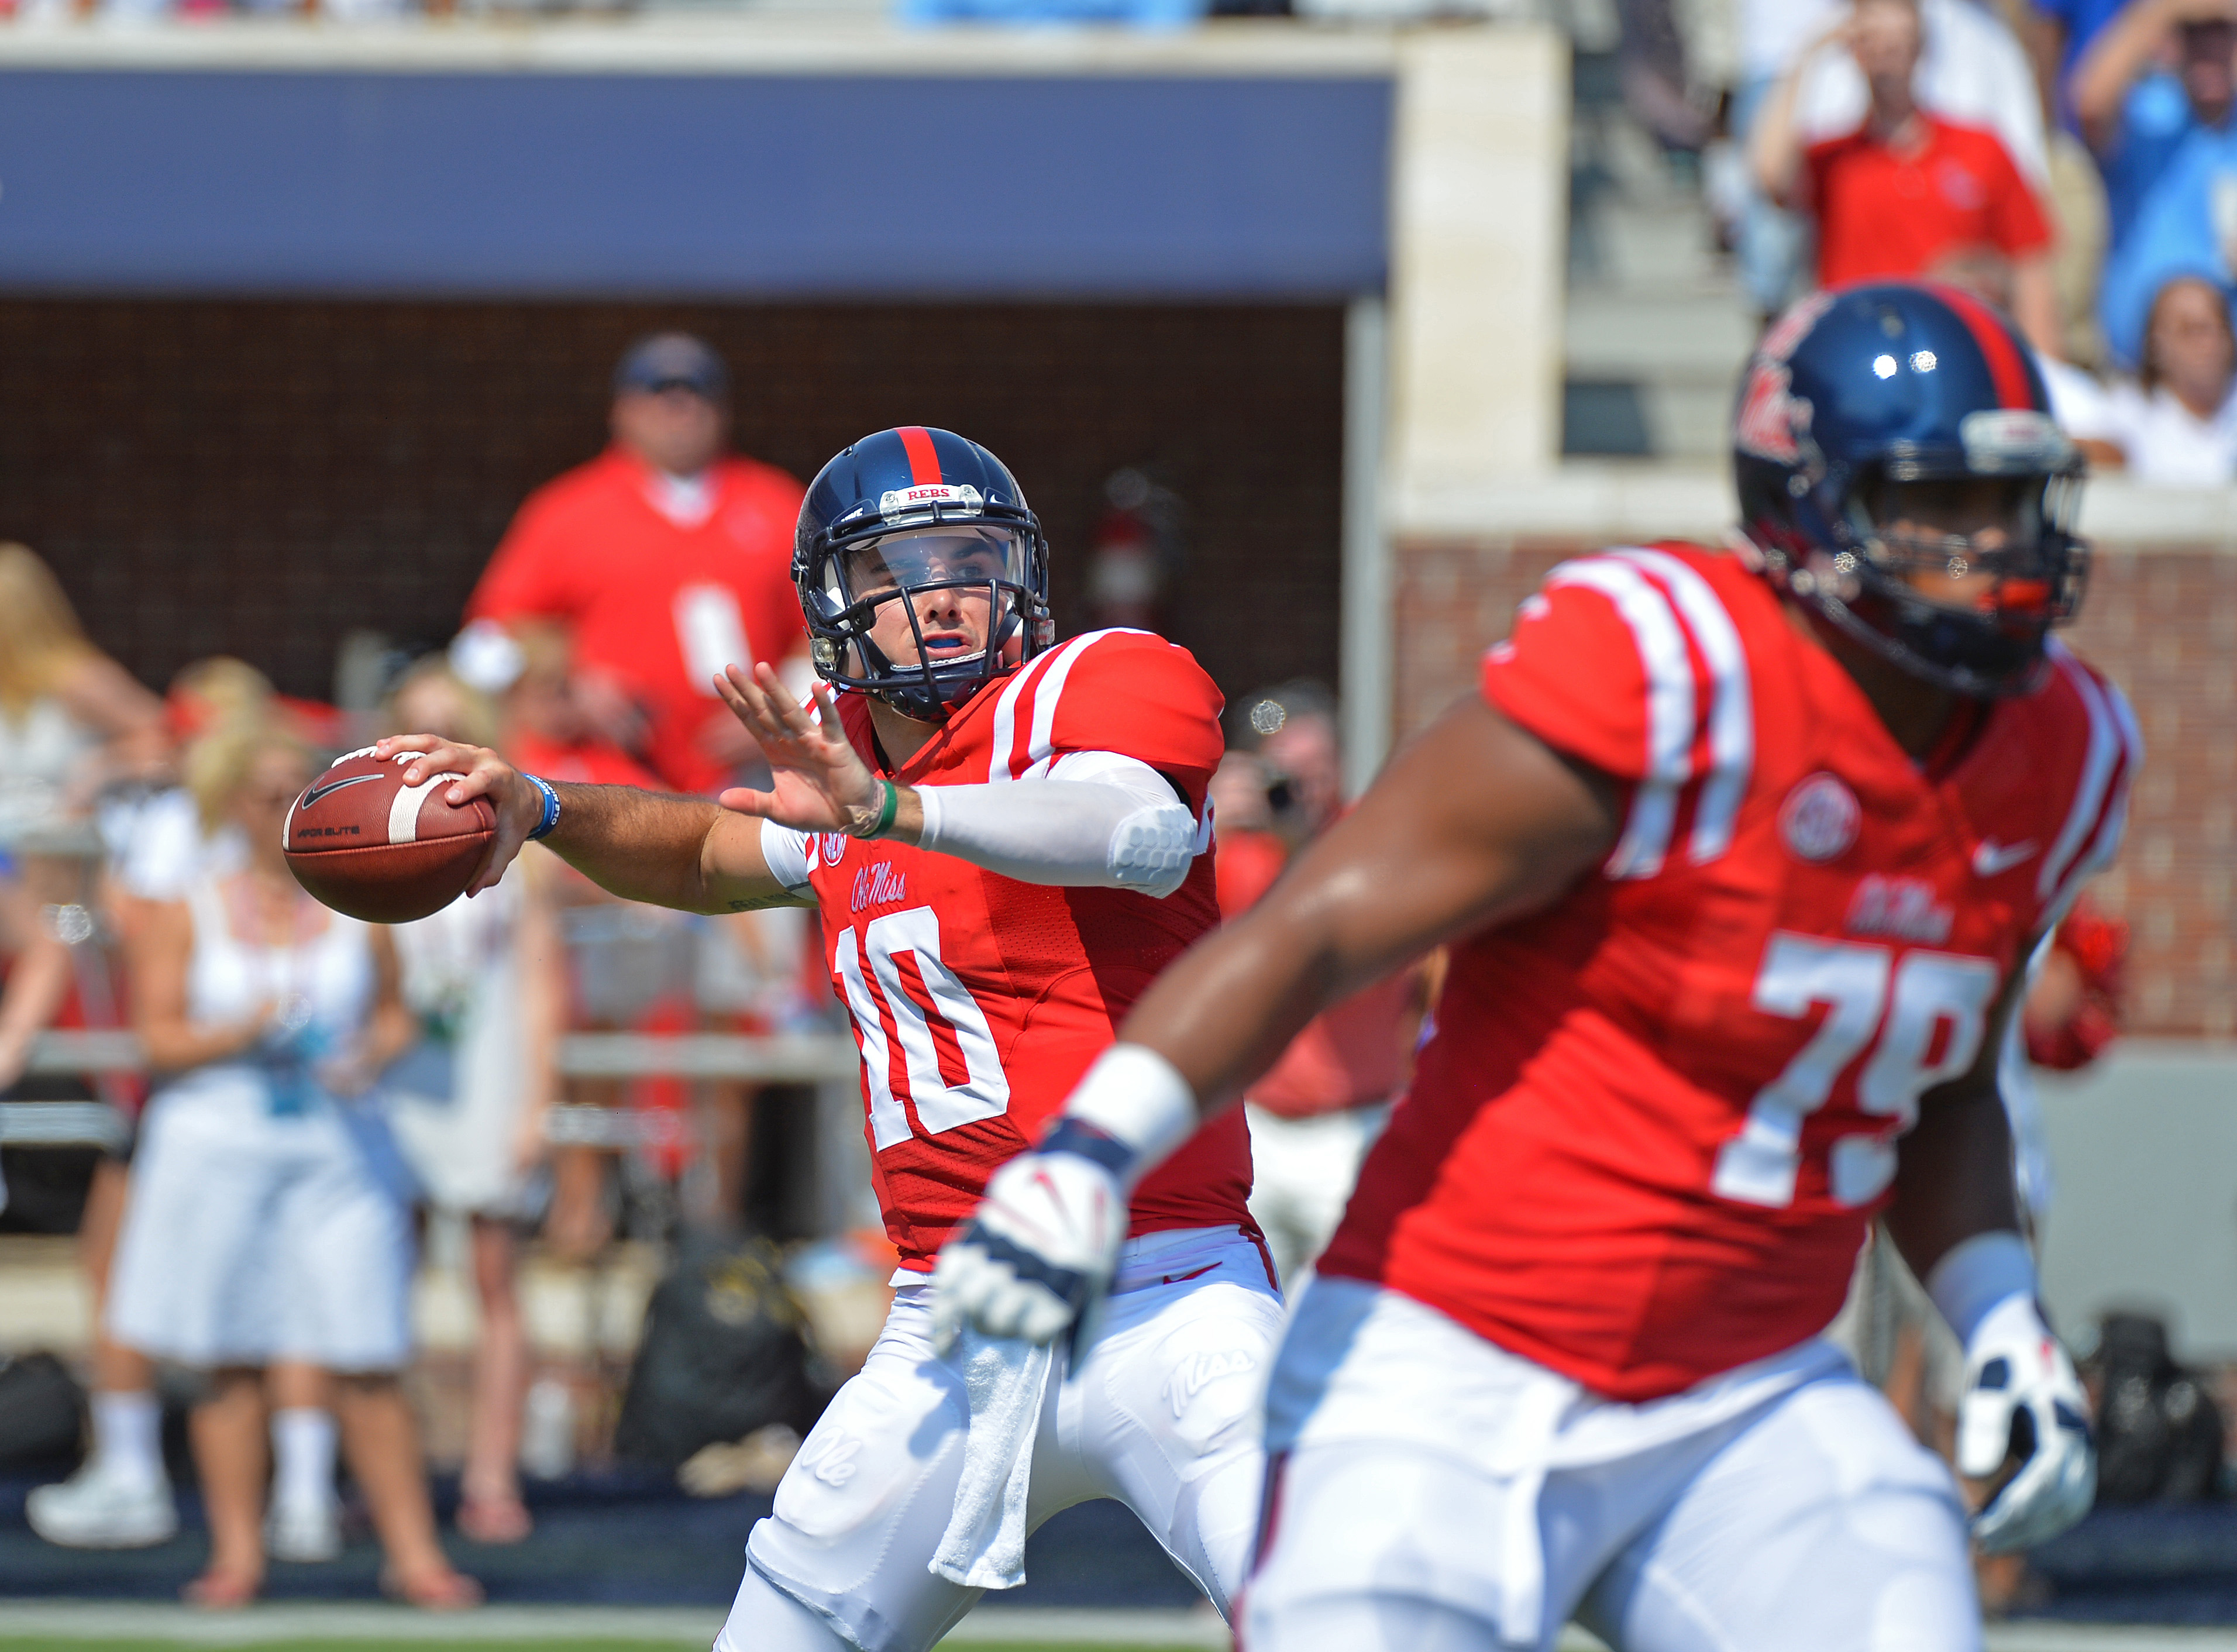 Mississippi quarterback Chad Kelly (10) releases a pass during the first quarter of an NCAA college football game against Tennessee-Martin in Oxford, Miss., Saturday, Sept. 5, 2015. (AP Photo/Thomas Graning)